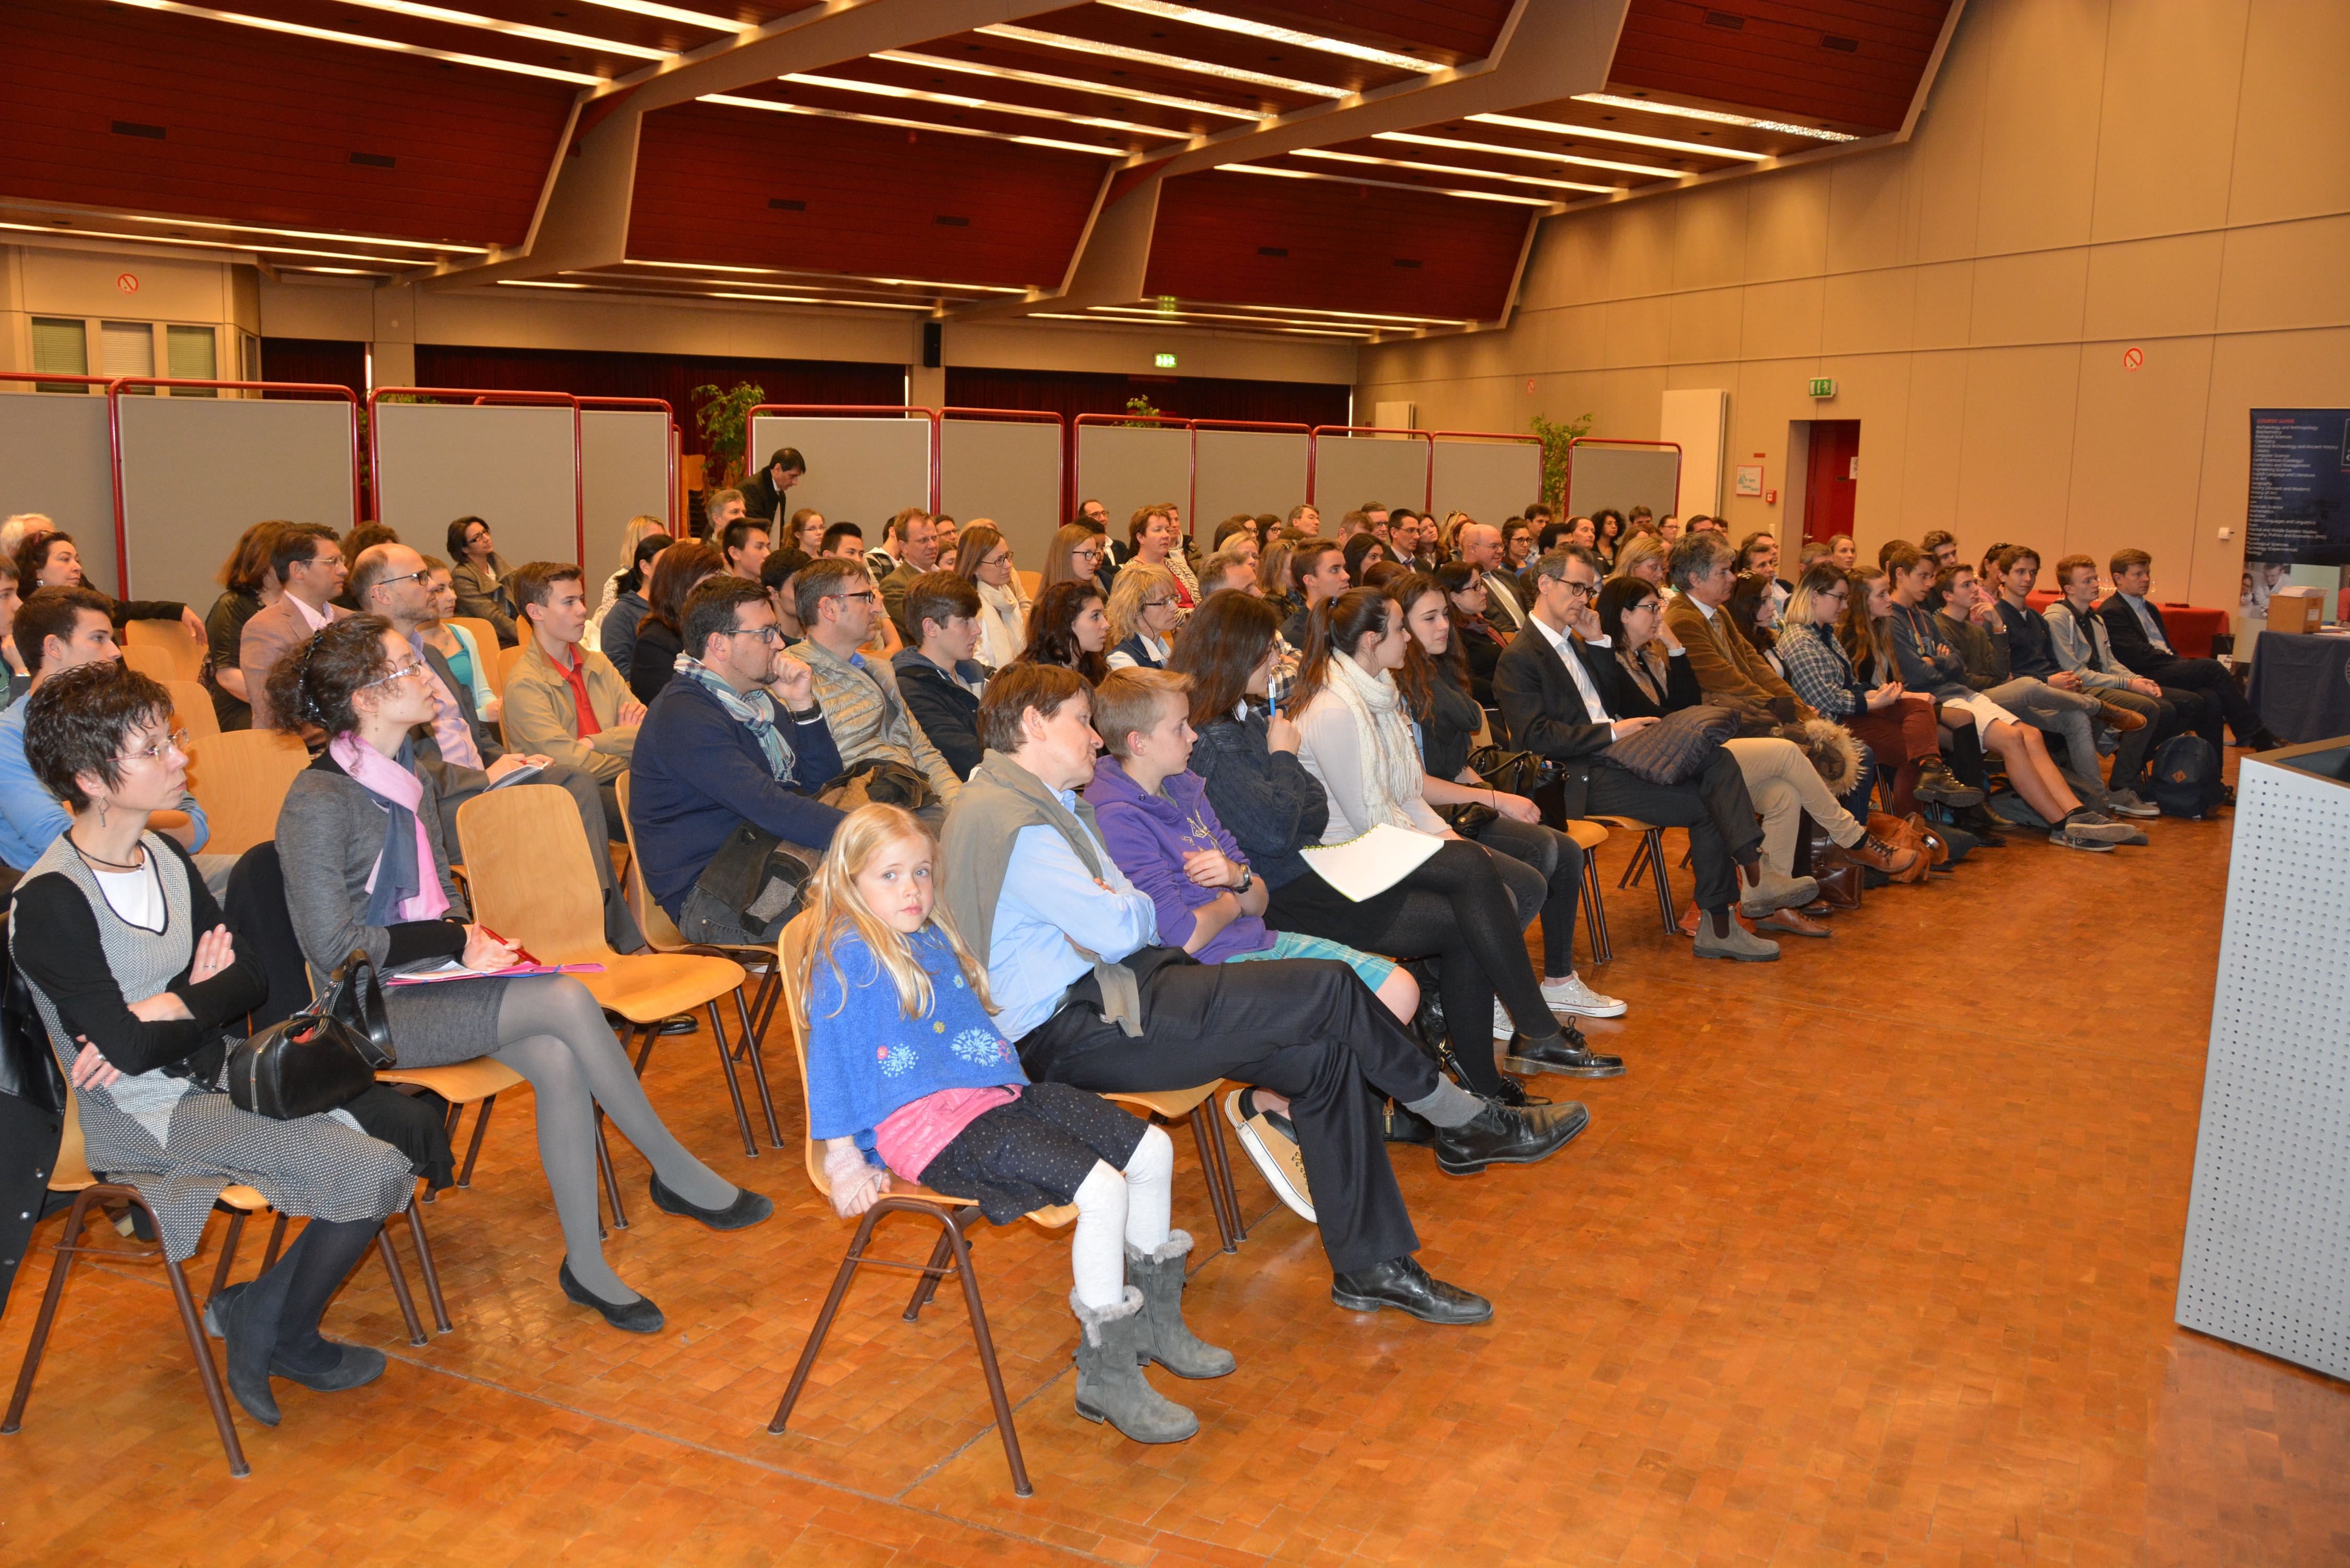 The large audience of pupils, parents and teachers